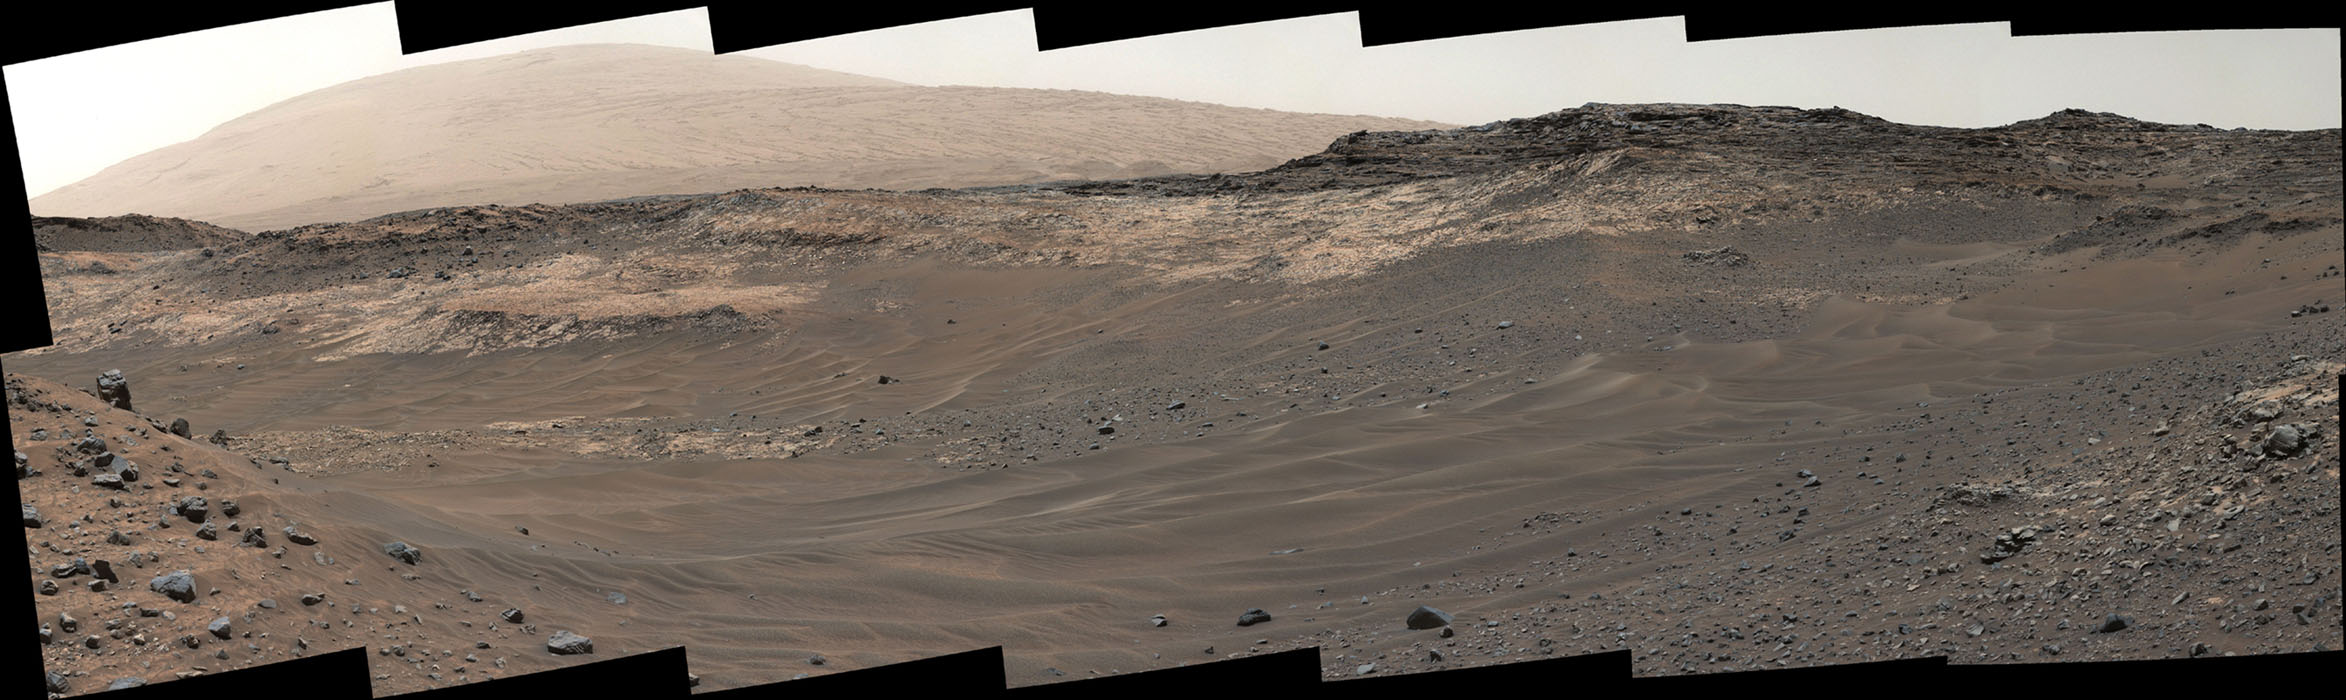 This view southeastward from Curiosity's Mast Camera (Mastcam) shows terrain judged difficult for traversing between the rover and an outcrop in the middle distance where a pale rock unit meets a darker rock unit above it.